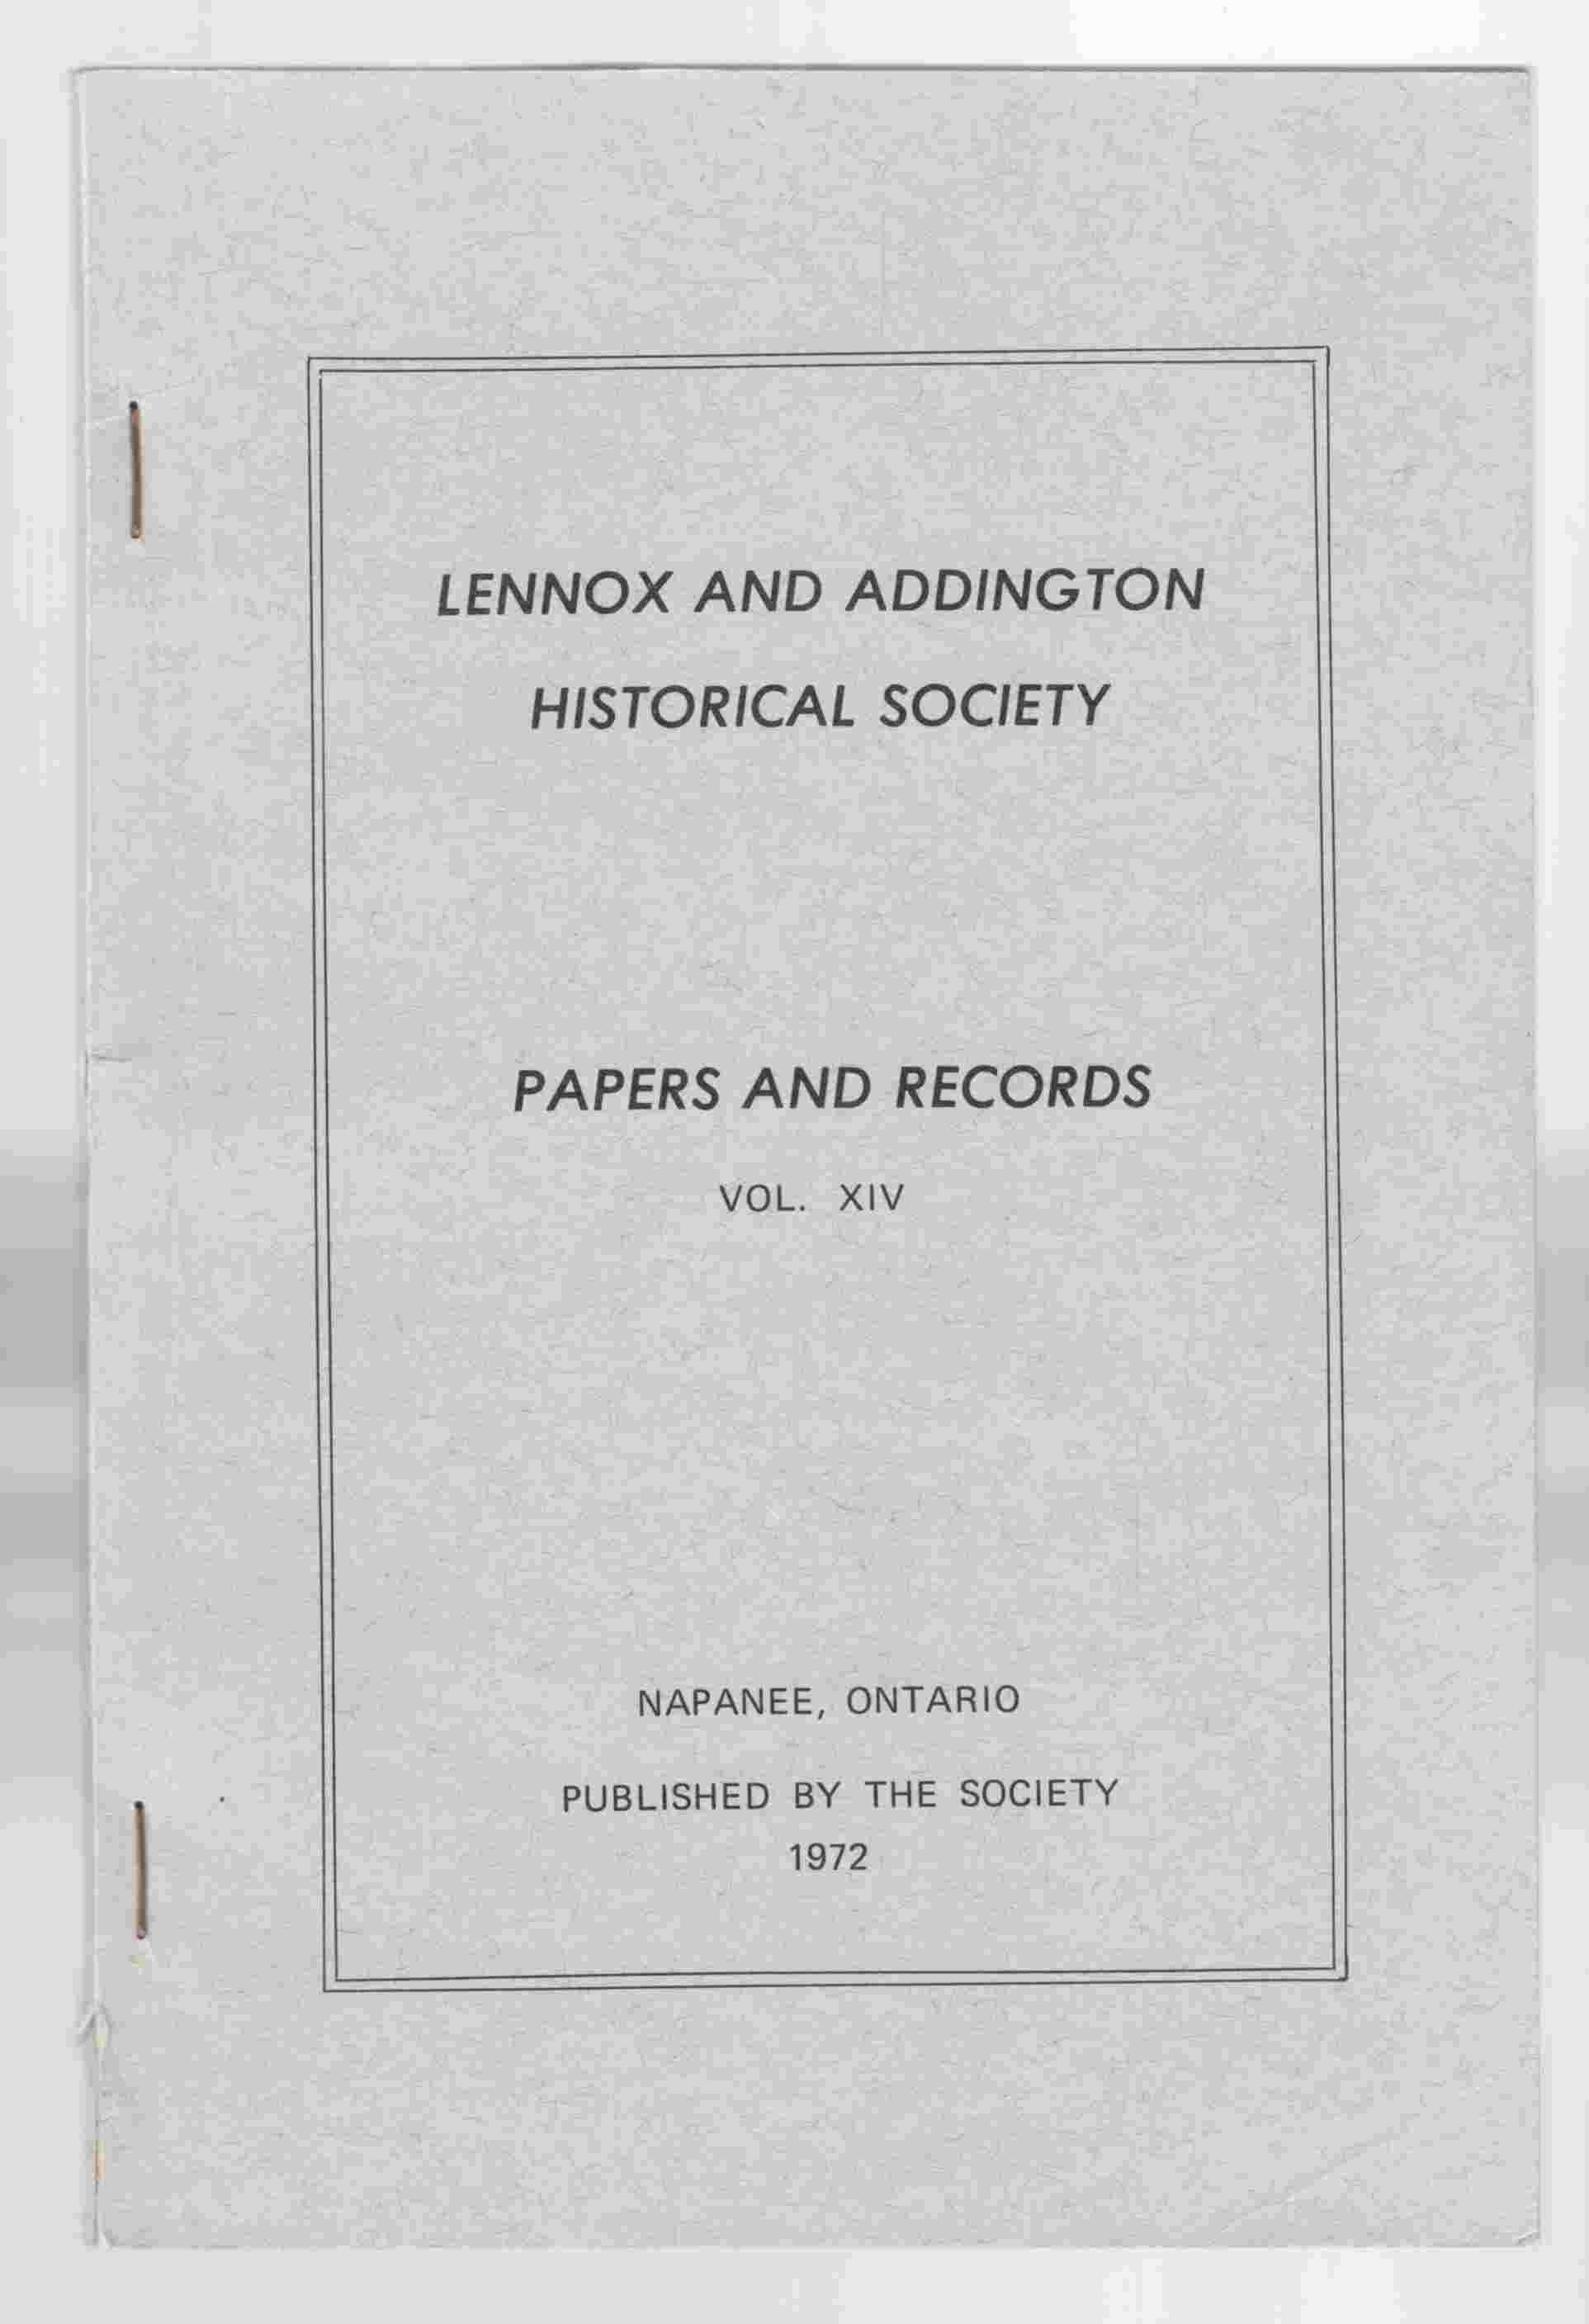 Image for Lennox and Addington Historical Society Papers and Records Vol. XIV